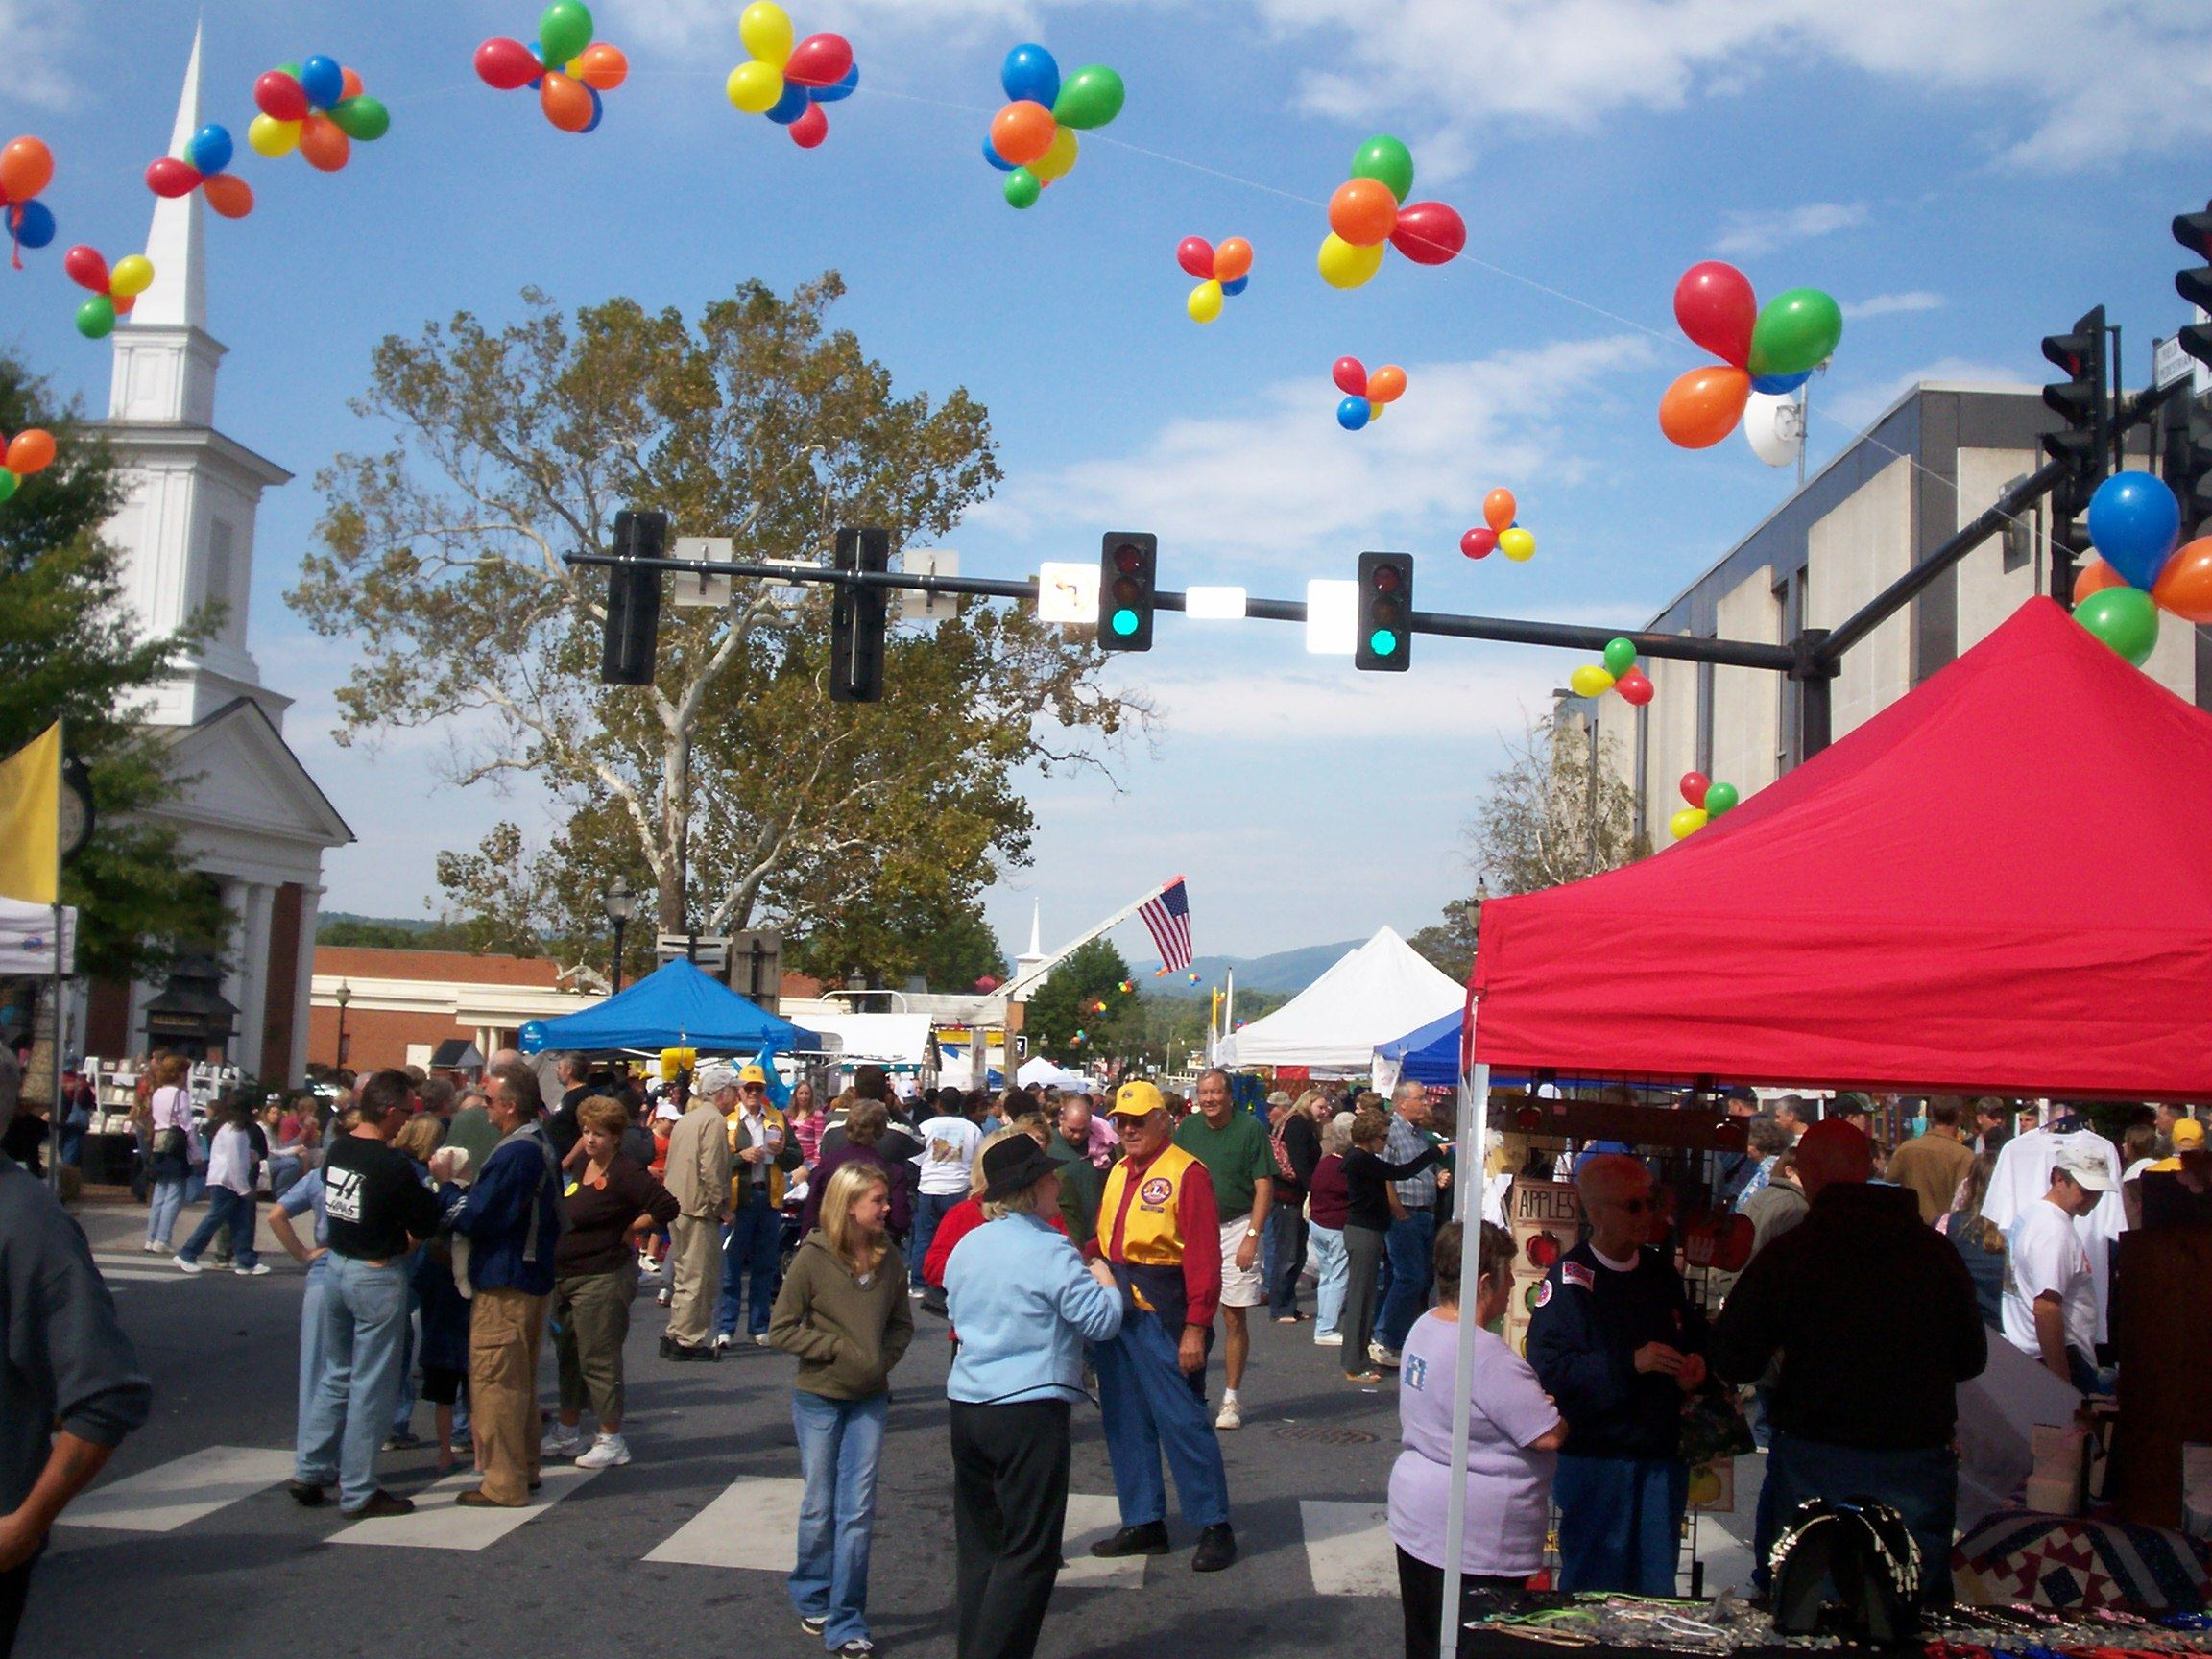 Downtown Centerfest in Bedford VA